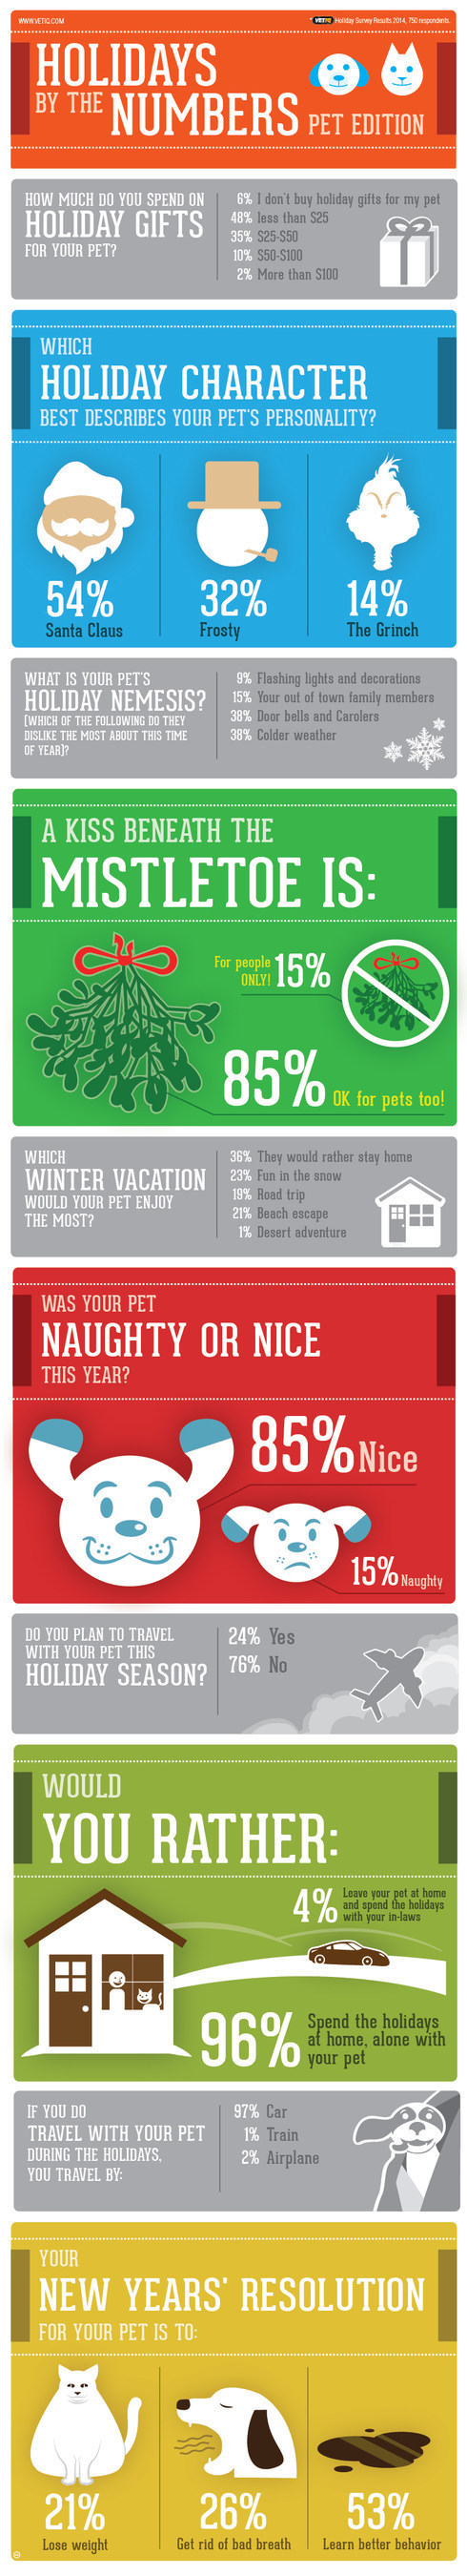 Holidays by the Numbers - Pet Edition (VetIQ Survey Results)